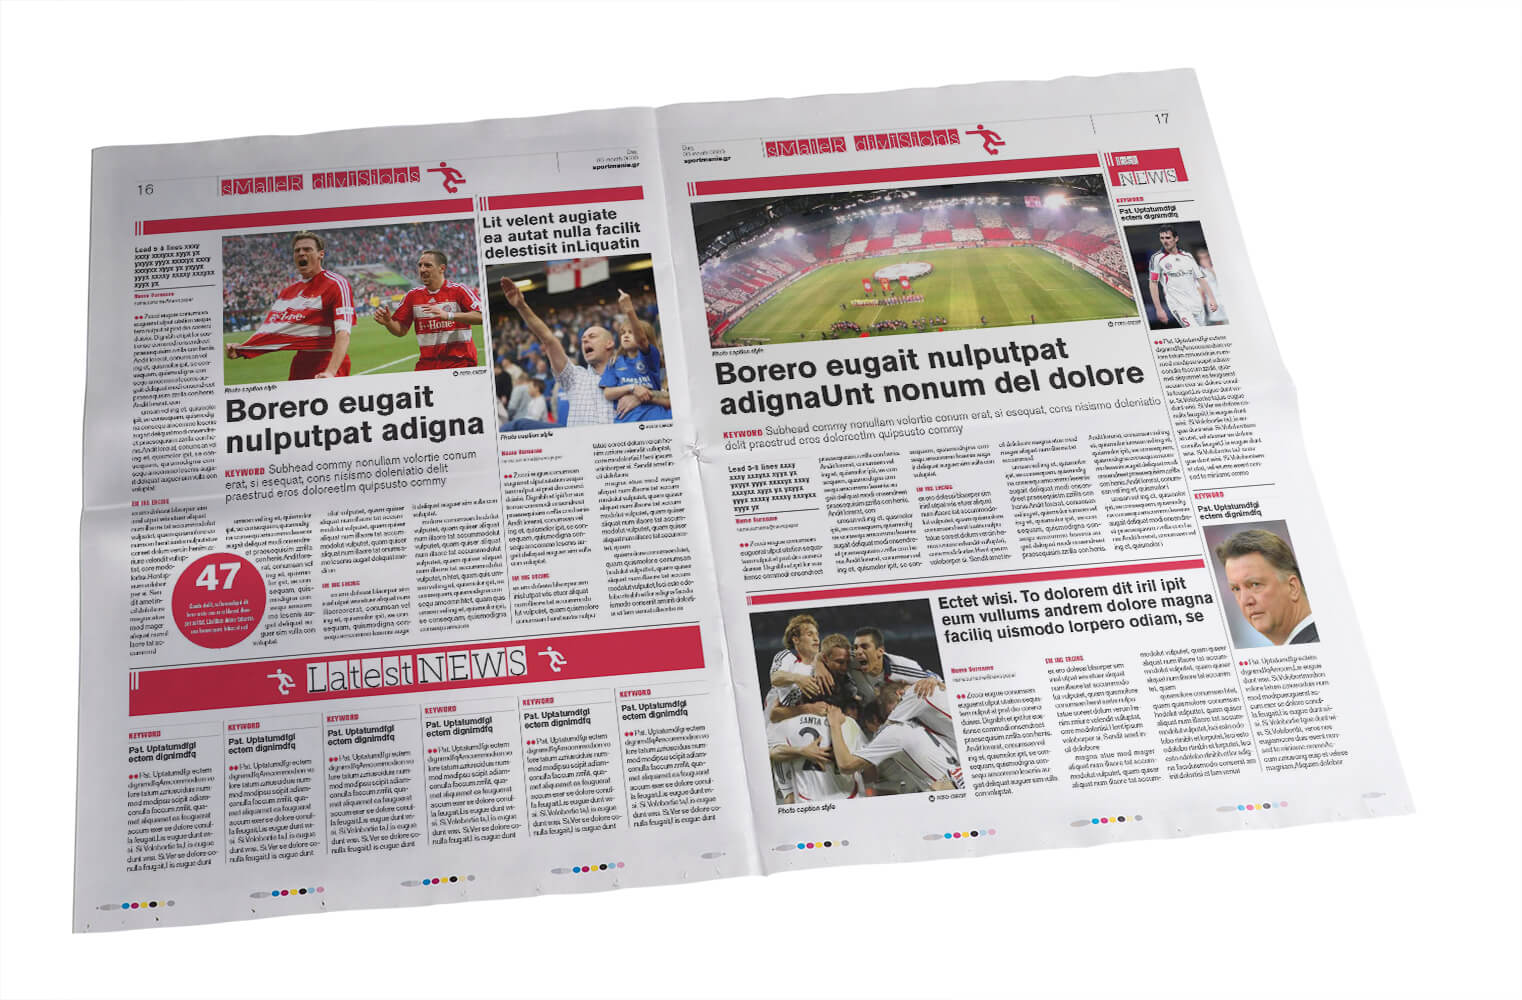 sportmania-newspaper_spread-10